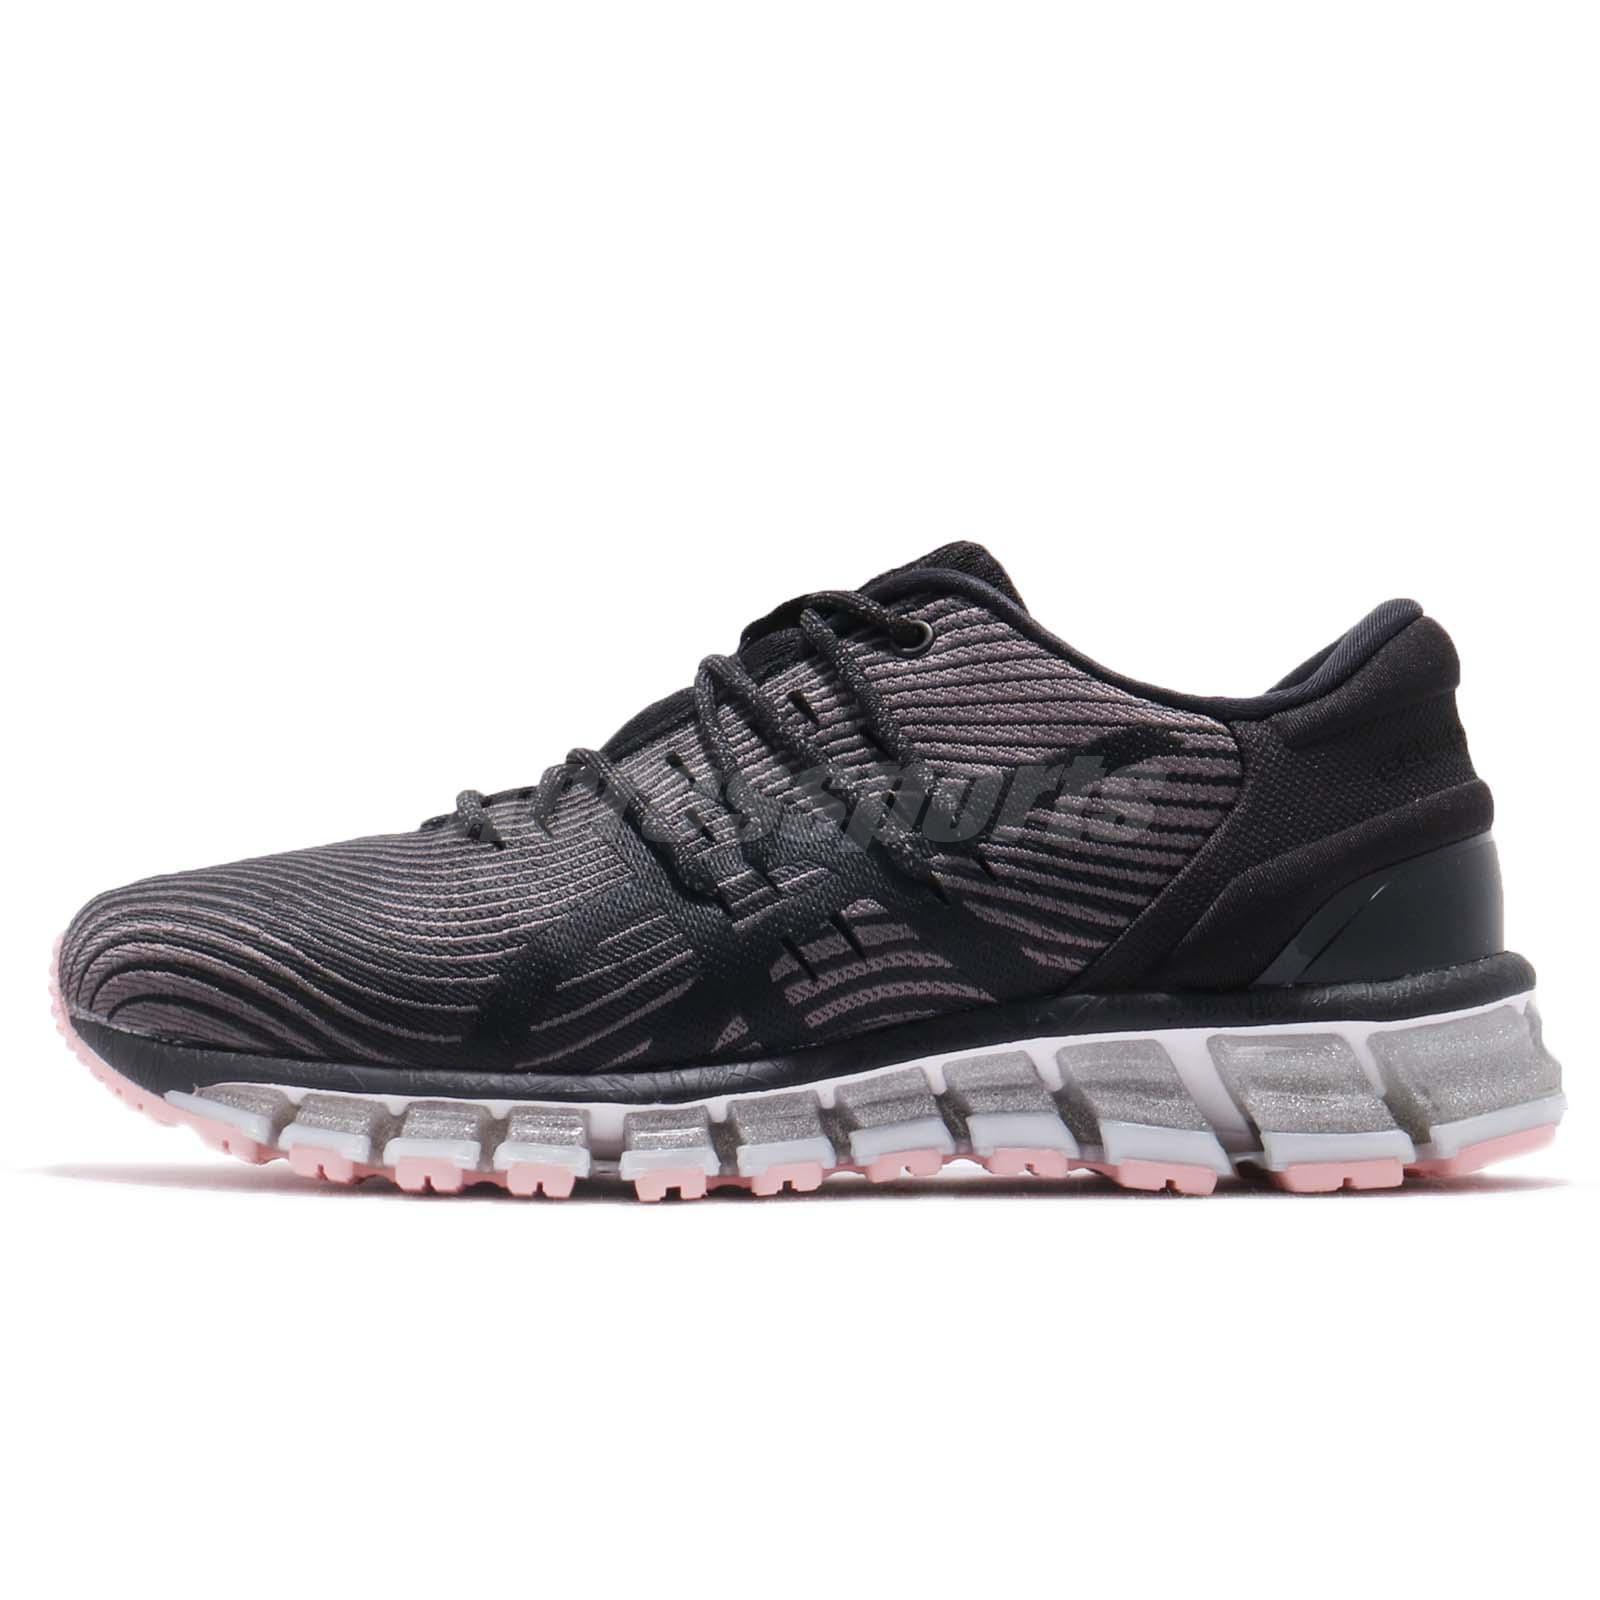 reputable site a30b5 93400 Details about Asics Gel-Quantum 360 4 Carbon Black Pink Women Running Shoes  1022A029-020